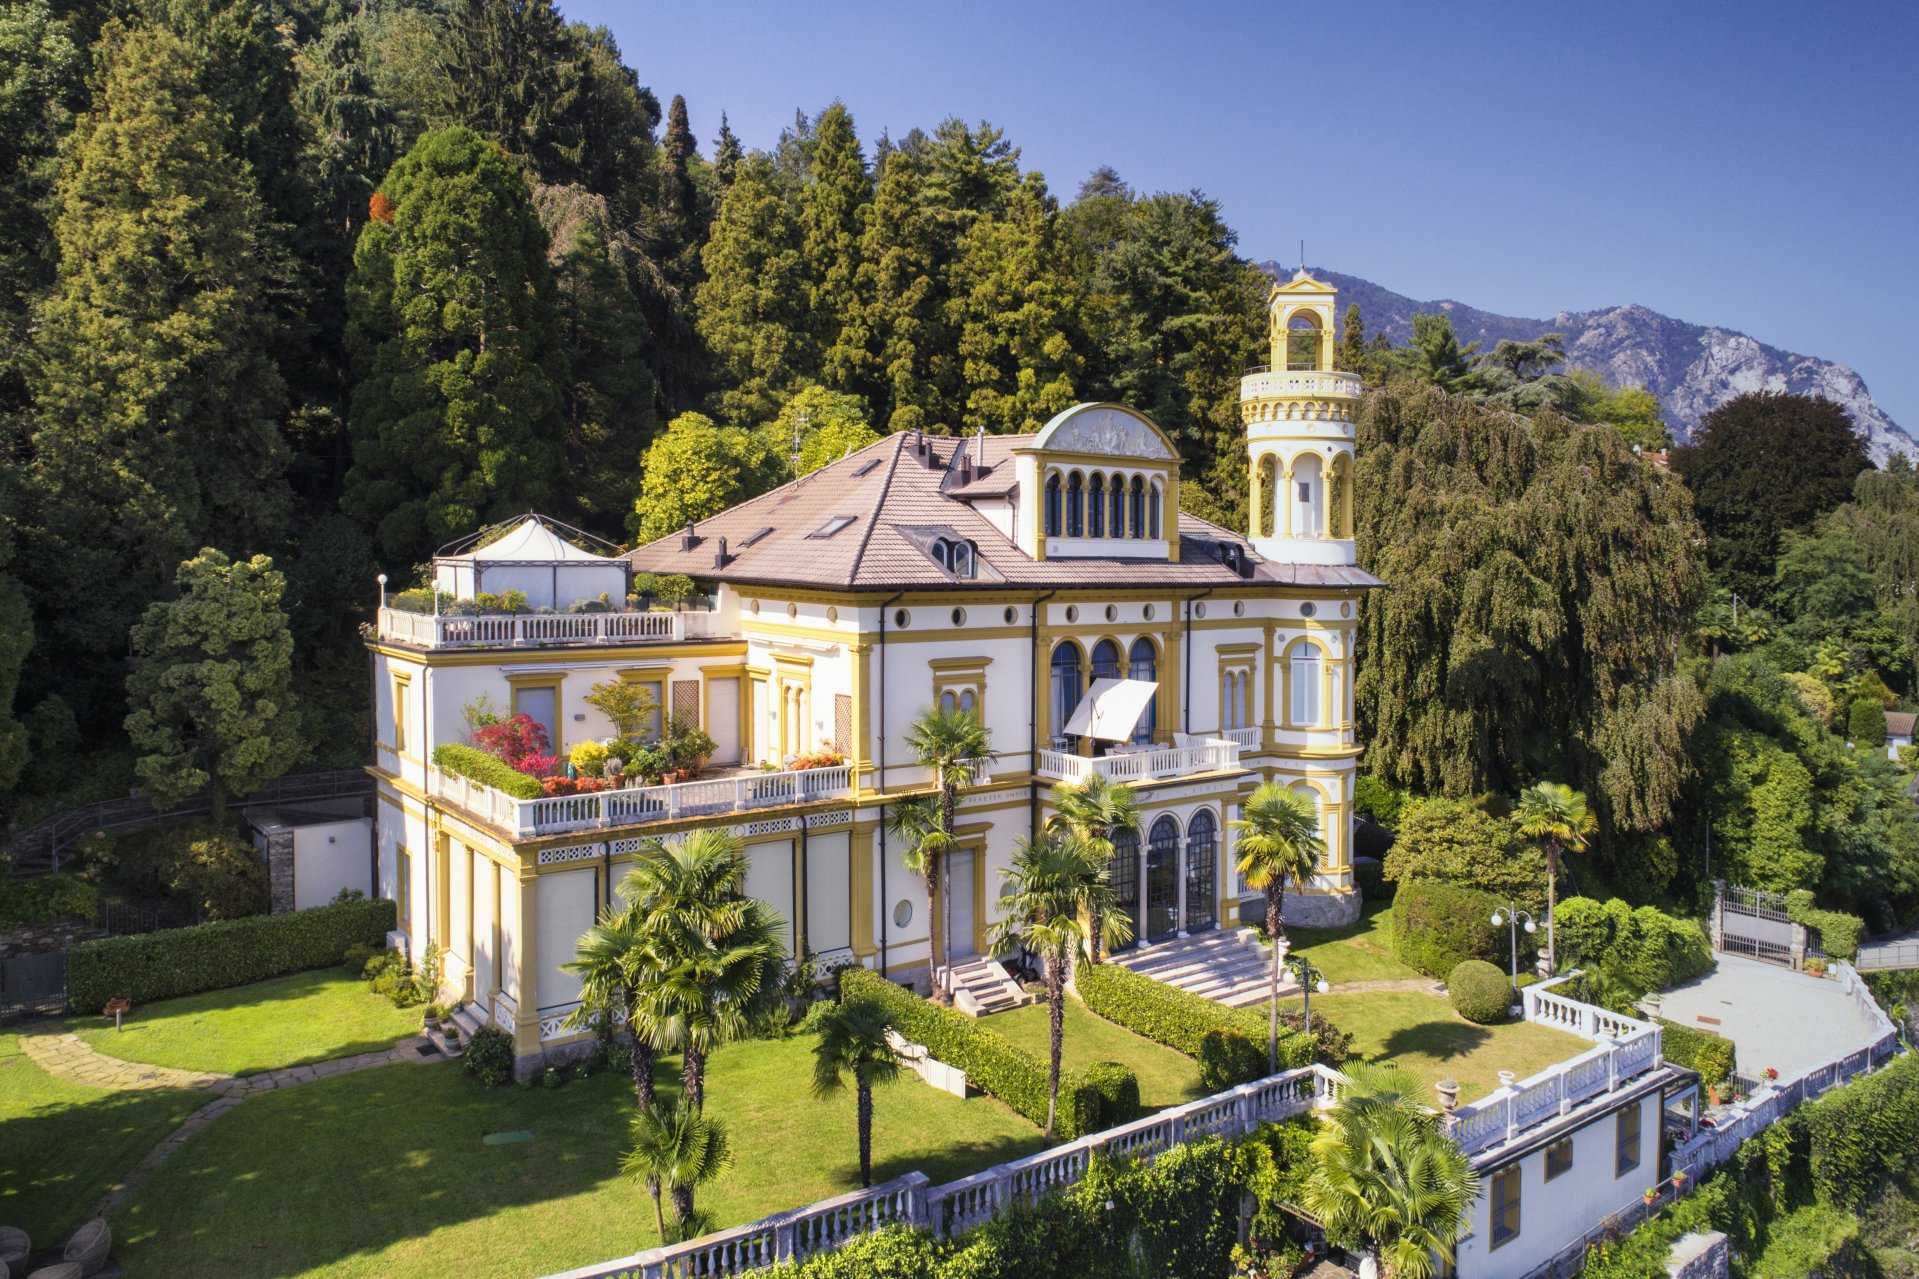 Apartment for sale in historic villa in Baveno - outside